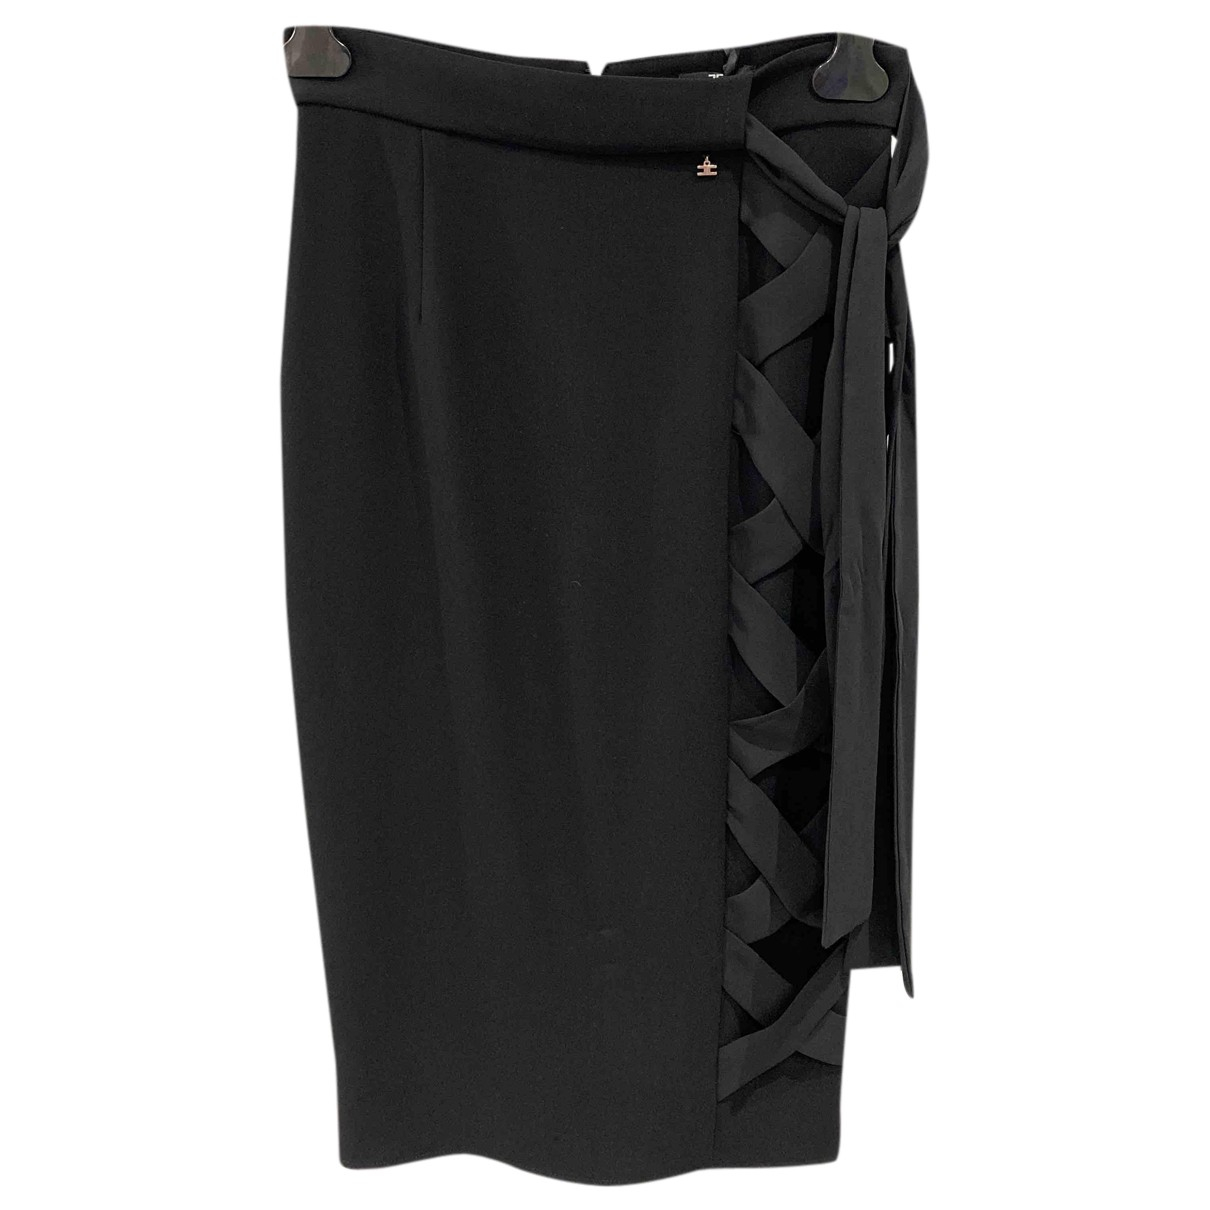 Elisabetta Franchi N Black skirt for Women 38 FR